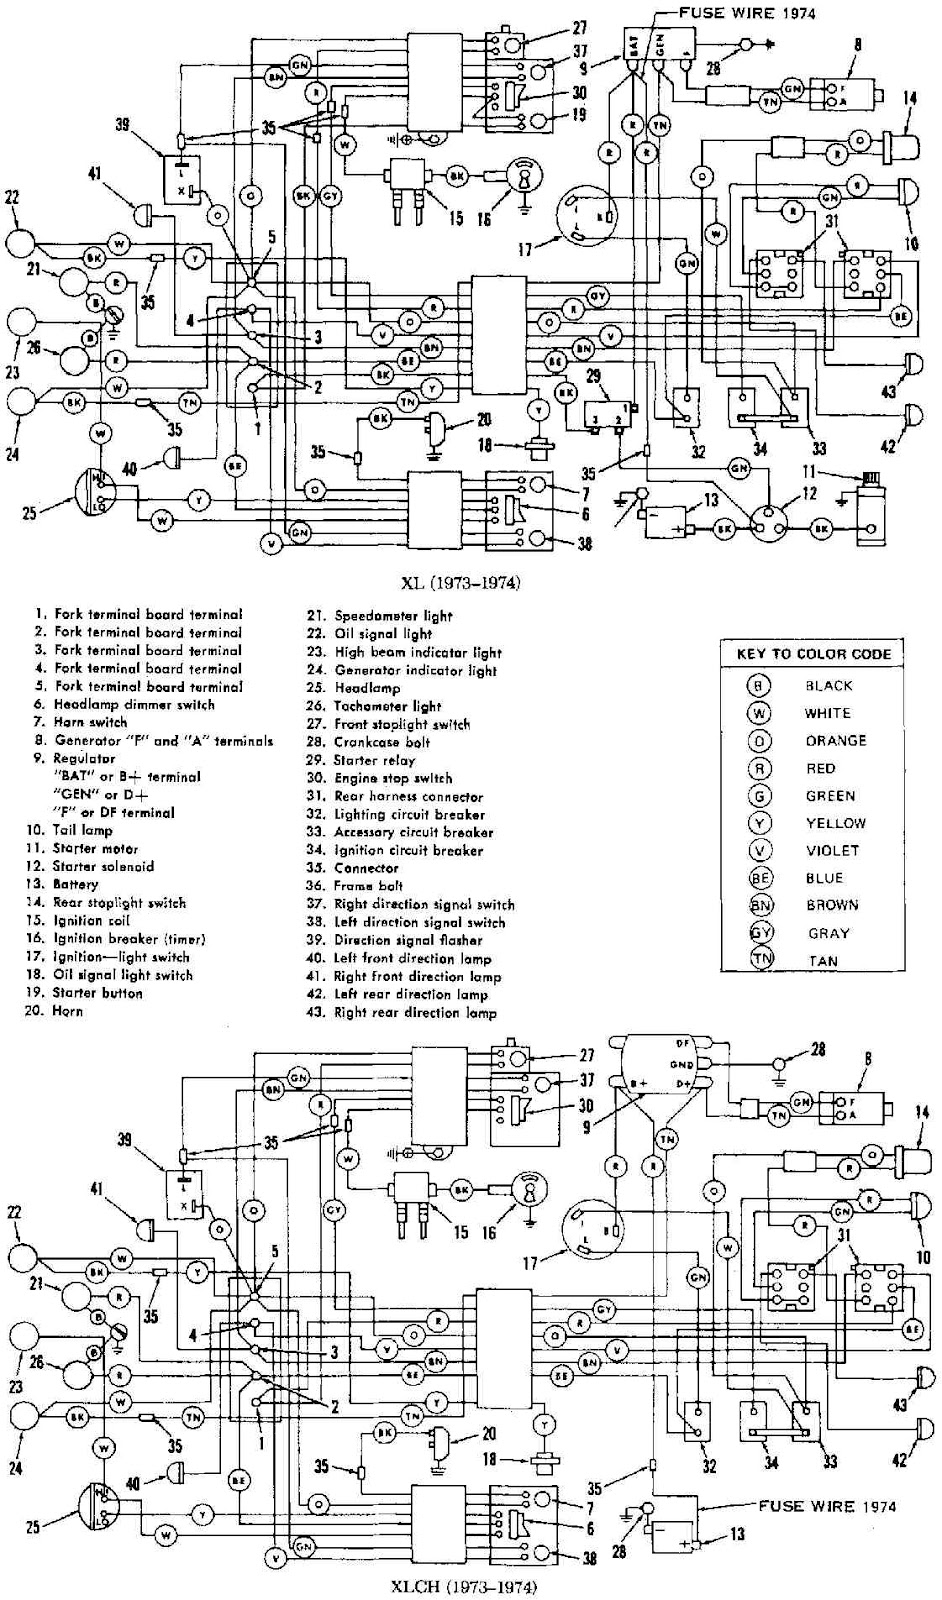 Harley Davidson Chopper Wiring Diagram : Harley davidson xl xlch  motorcycle electrical